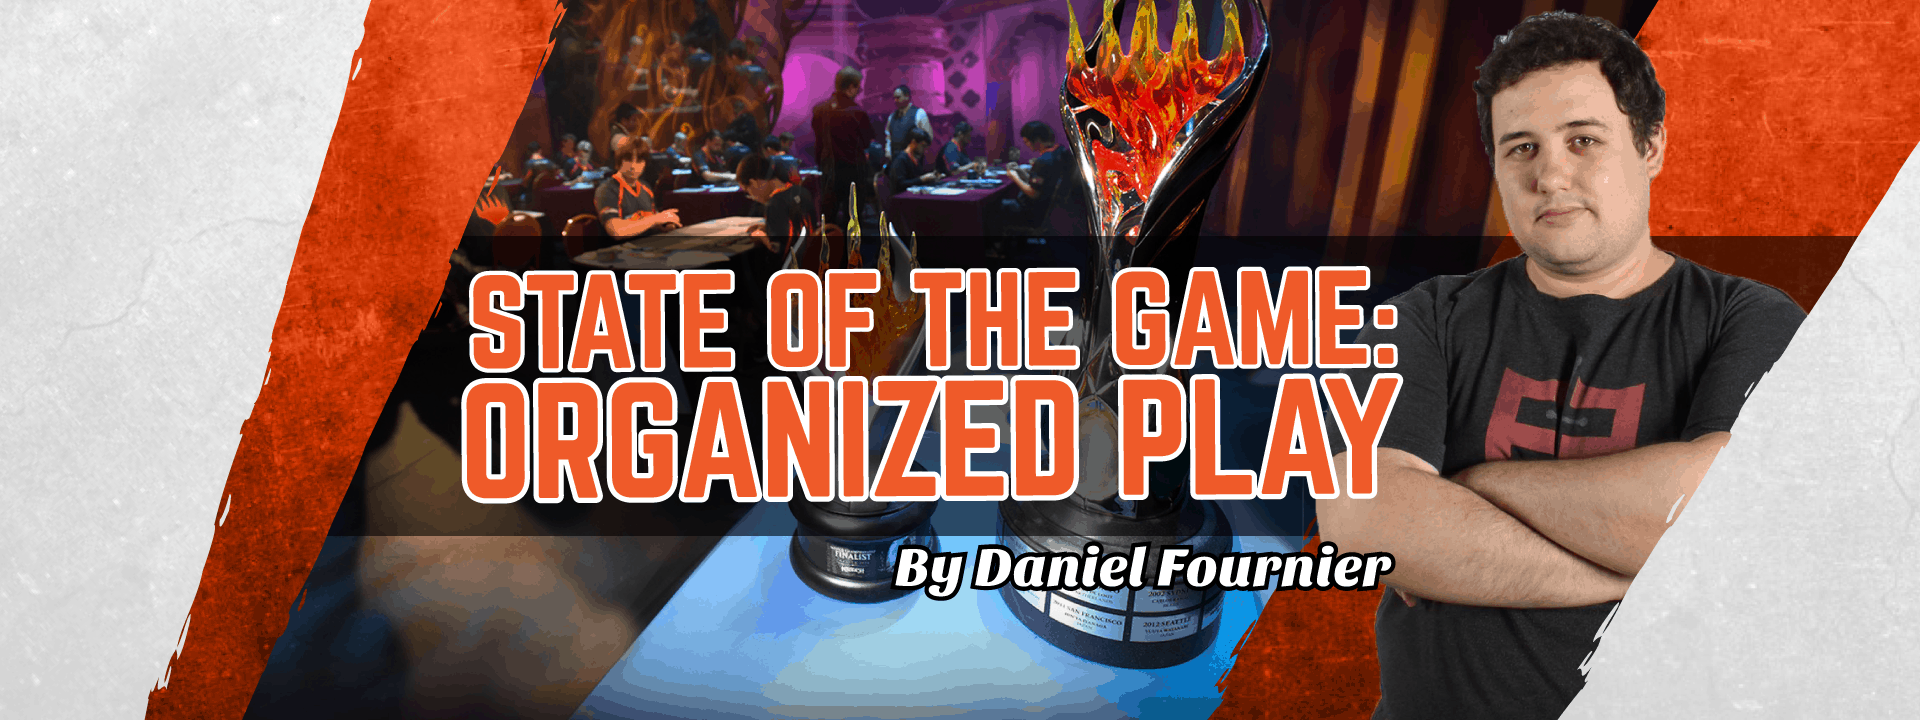 State of the Game: Organized Play